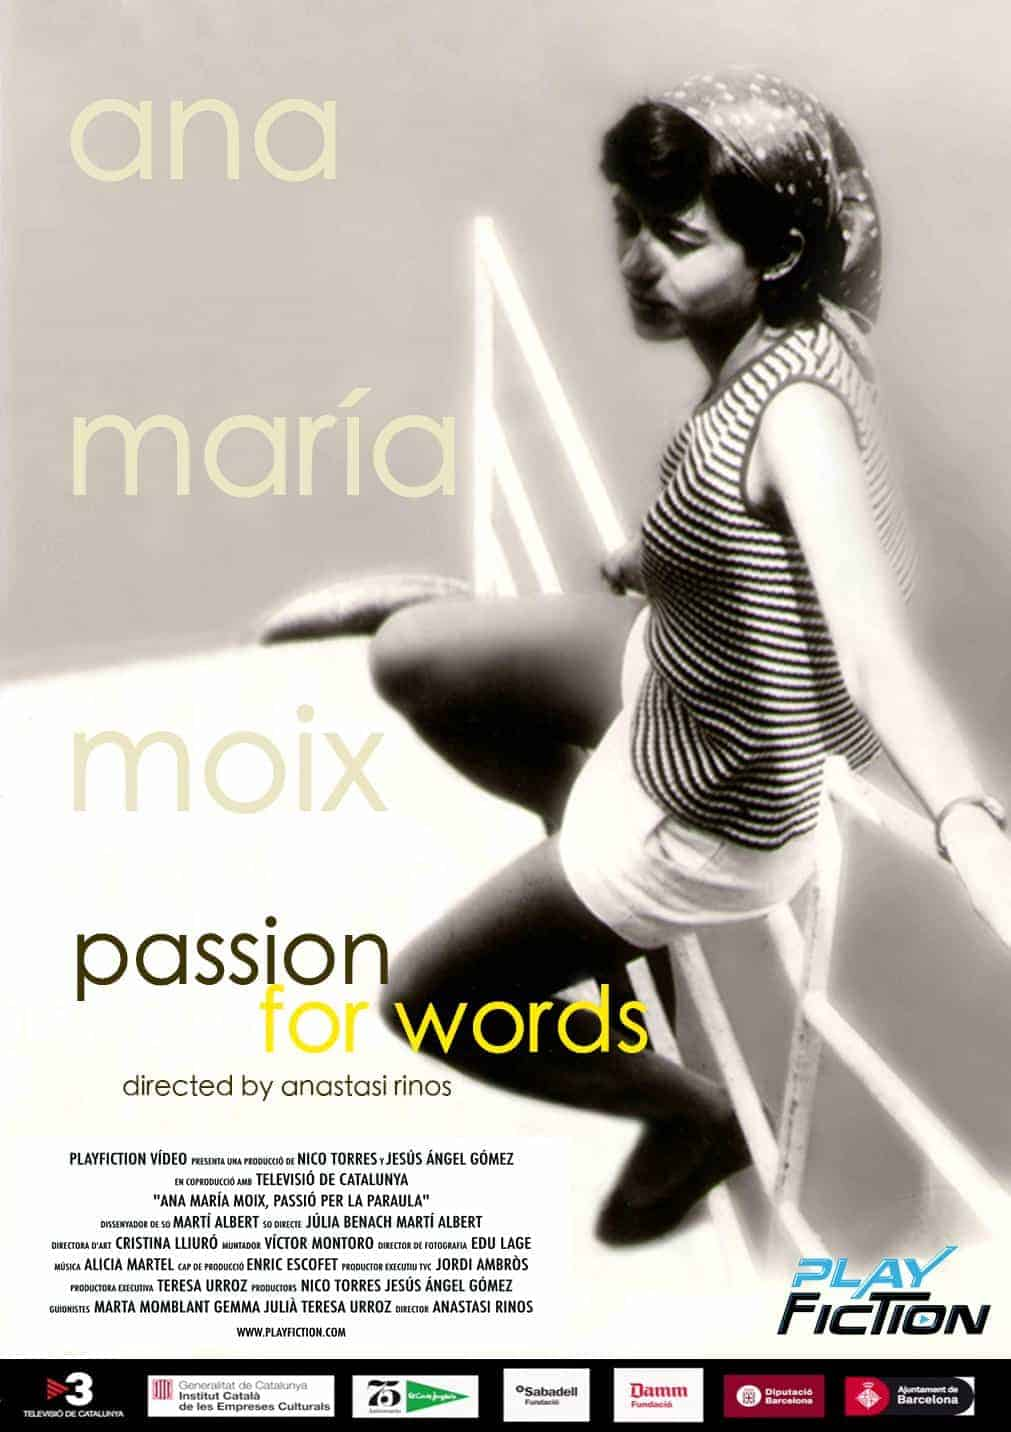 Ana María Moix, Passion for Words*